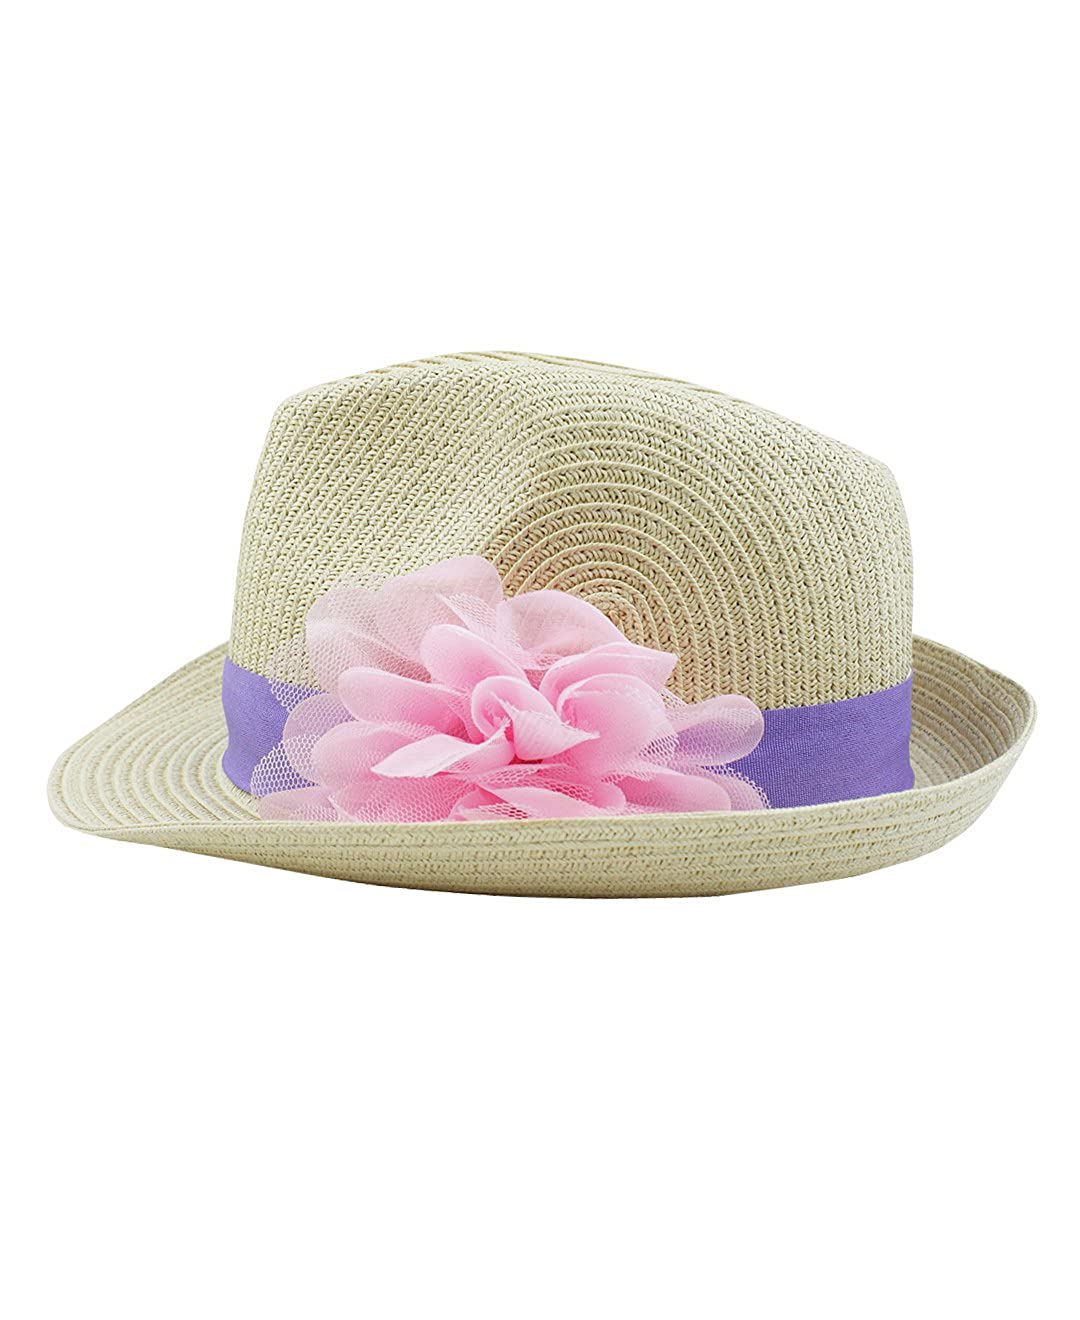 RuffleButts Little Girls Fedora Flower HAWYYXX-DORA-SC-TDLR